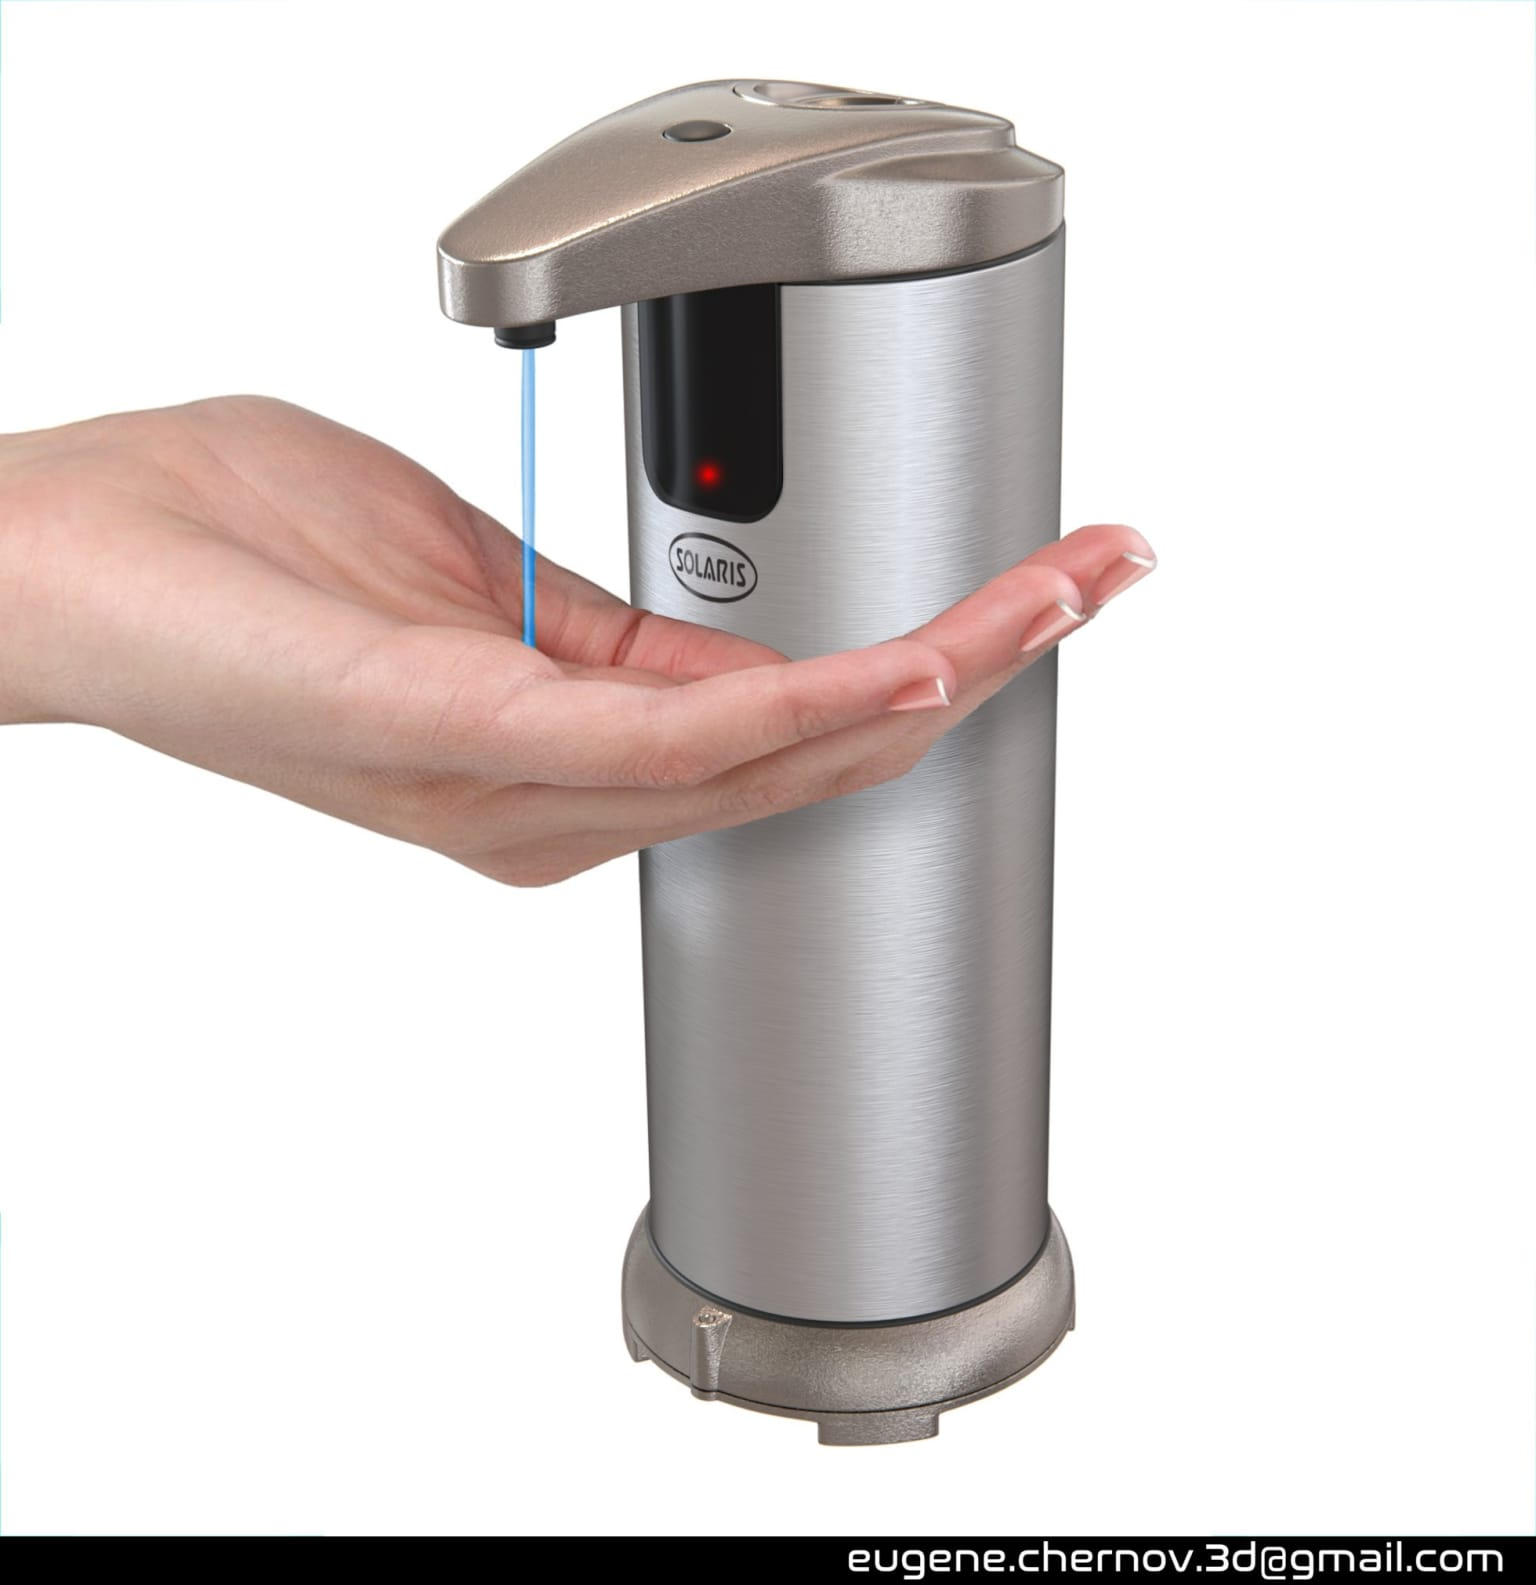 Modeling and visualization of a soap dispenser